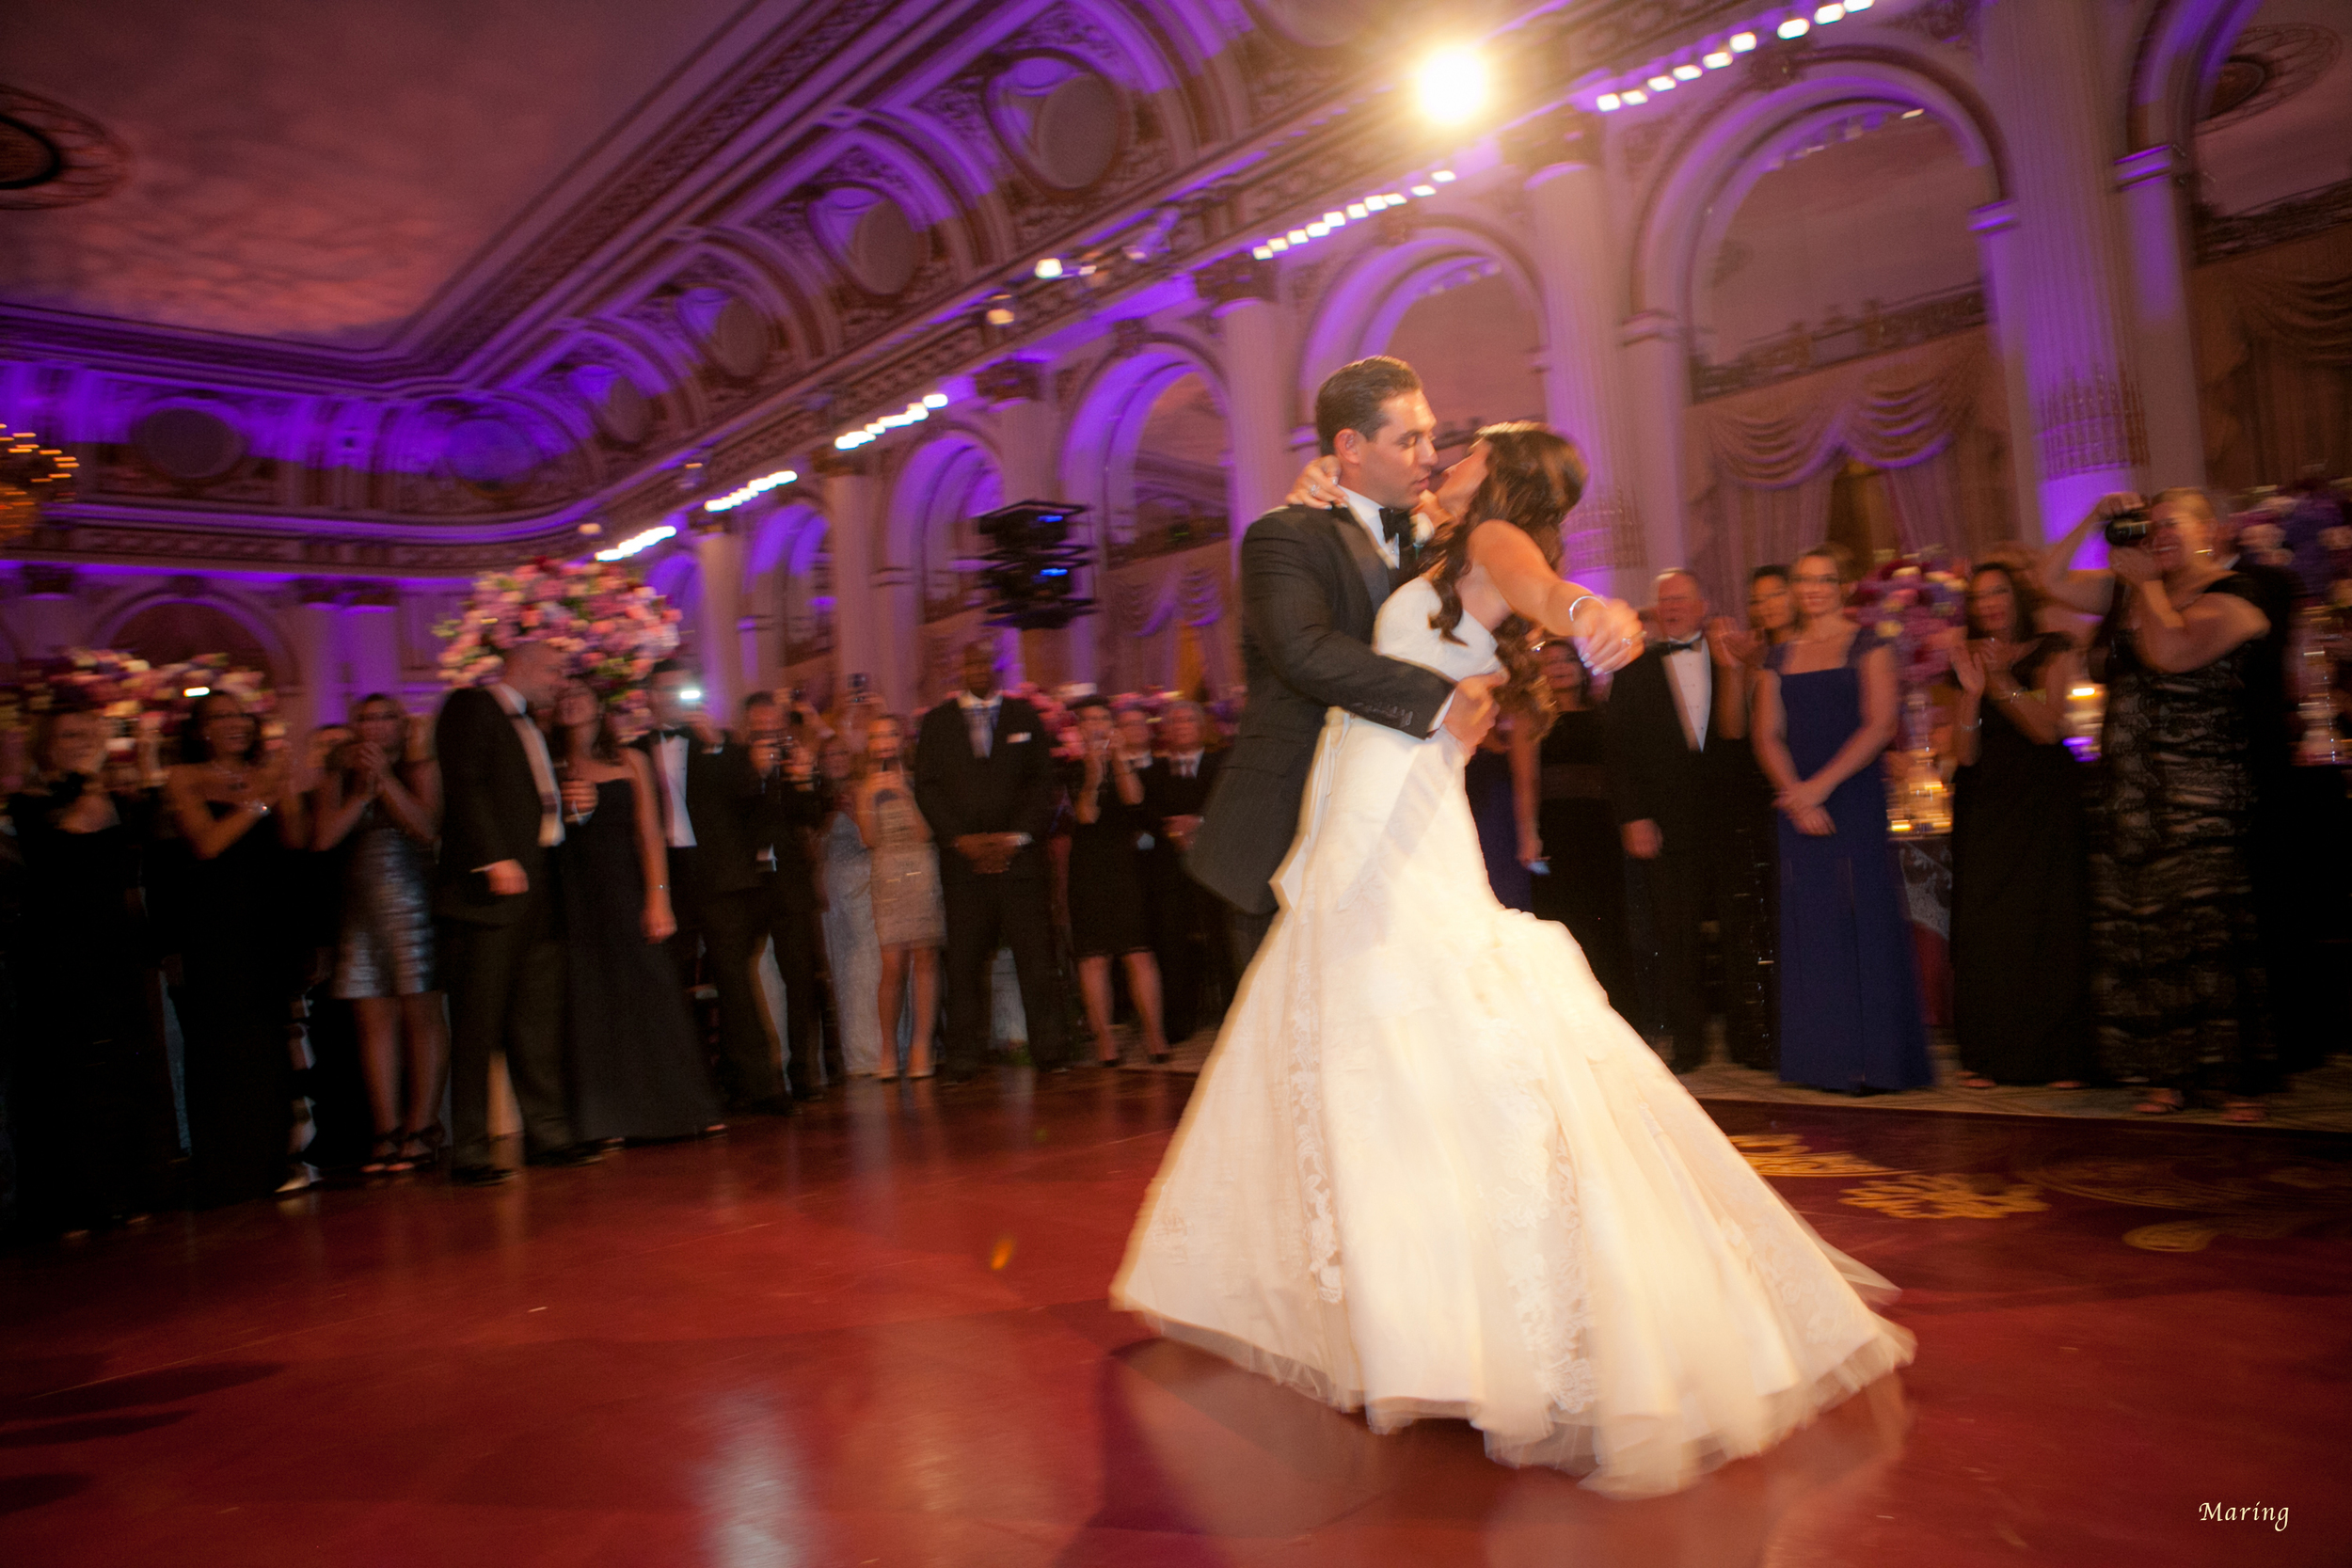 The bride and groom kiss at the end of their first dance as Maring captures the moment romantically during their  wedding at The Plaza Hotel , NYC. The couple came to Maring as a referral from celebrity wedding planner  David Tutera .